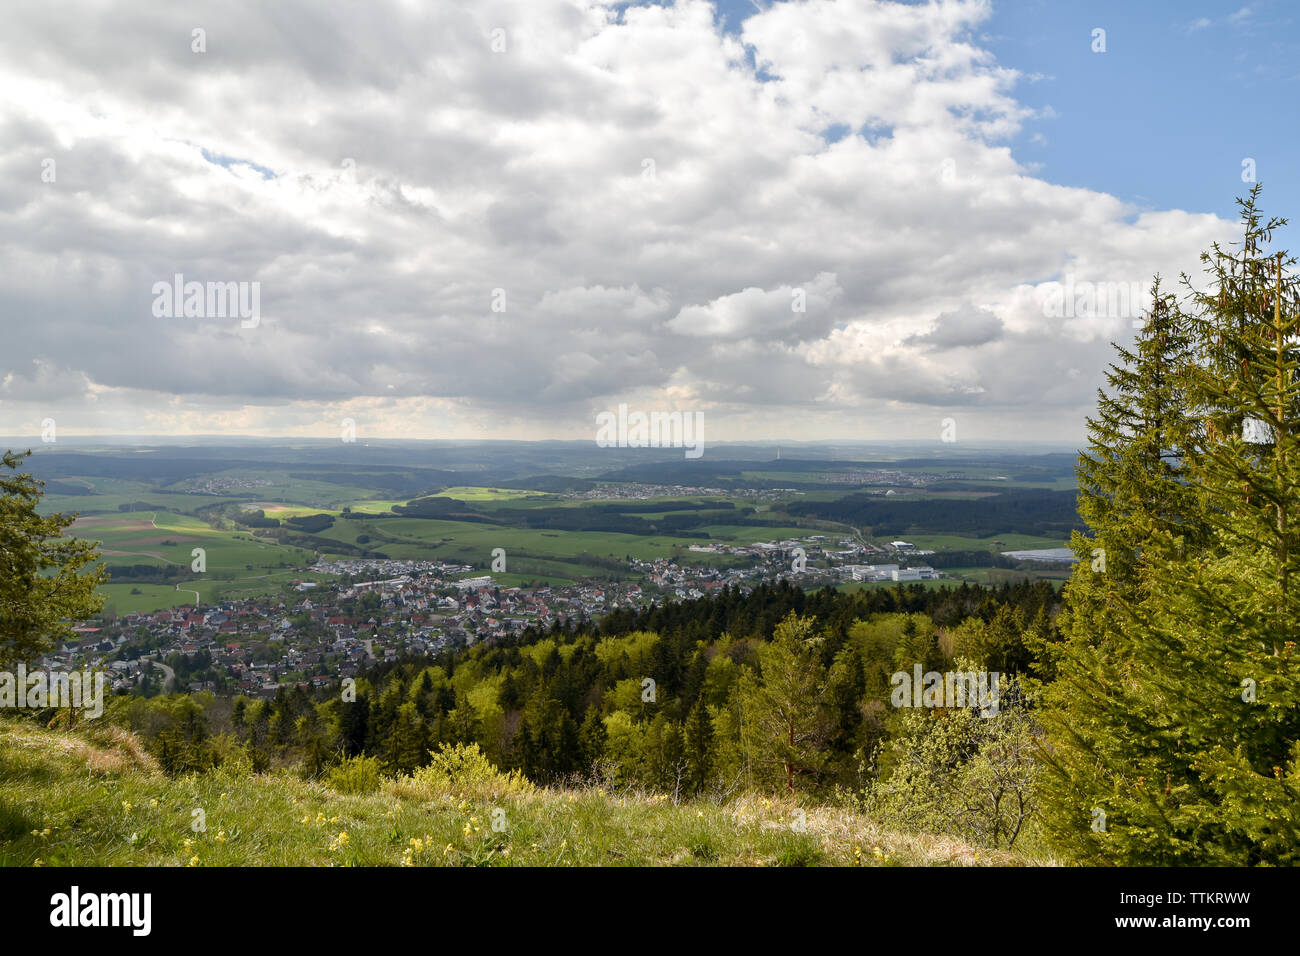 Panoramic view of Swabian Alb, highlands Germany. - Stock Image